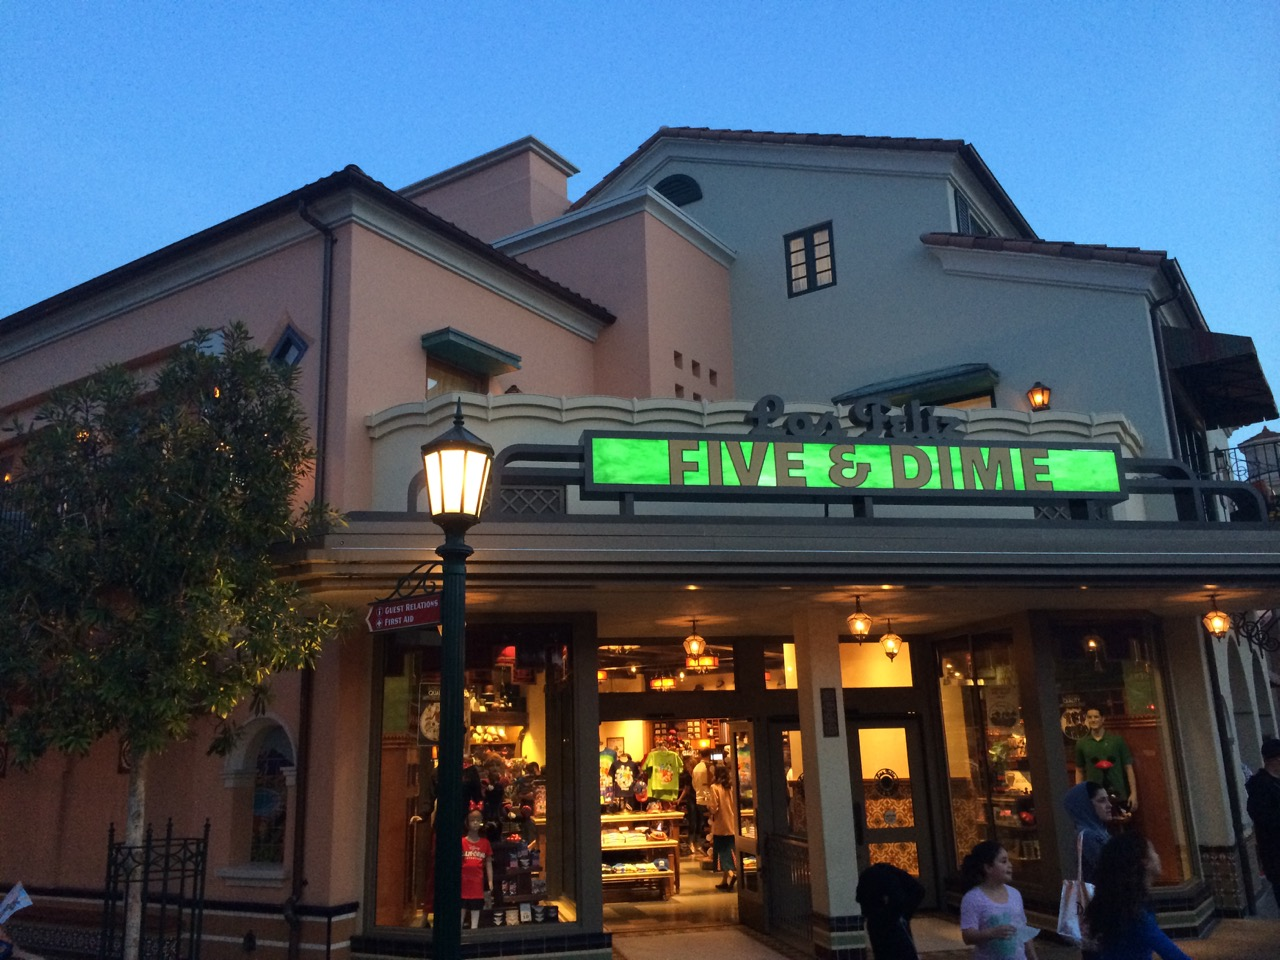 One of the best times to be in the park is evening, as is evidenced here on Buena Vista Street. Photo by J. Jeff Kober.